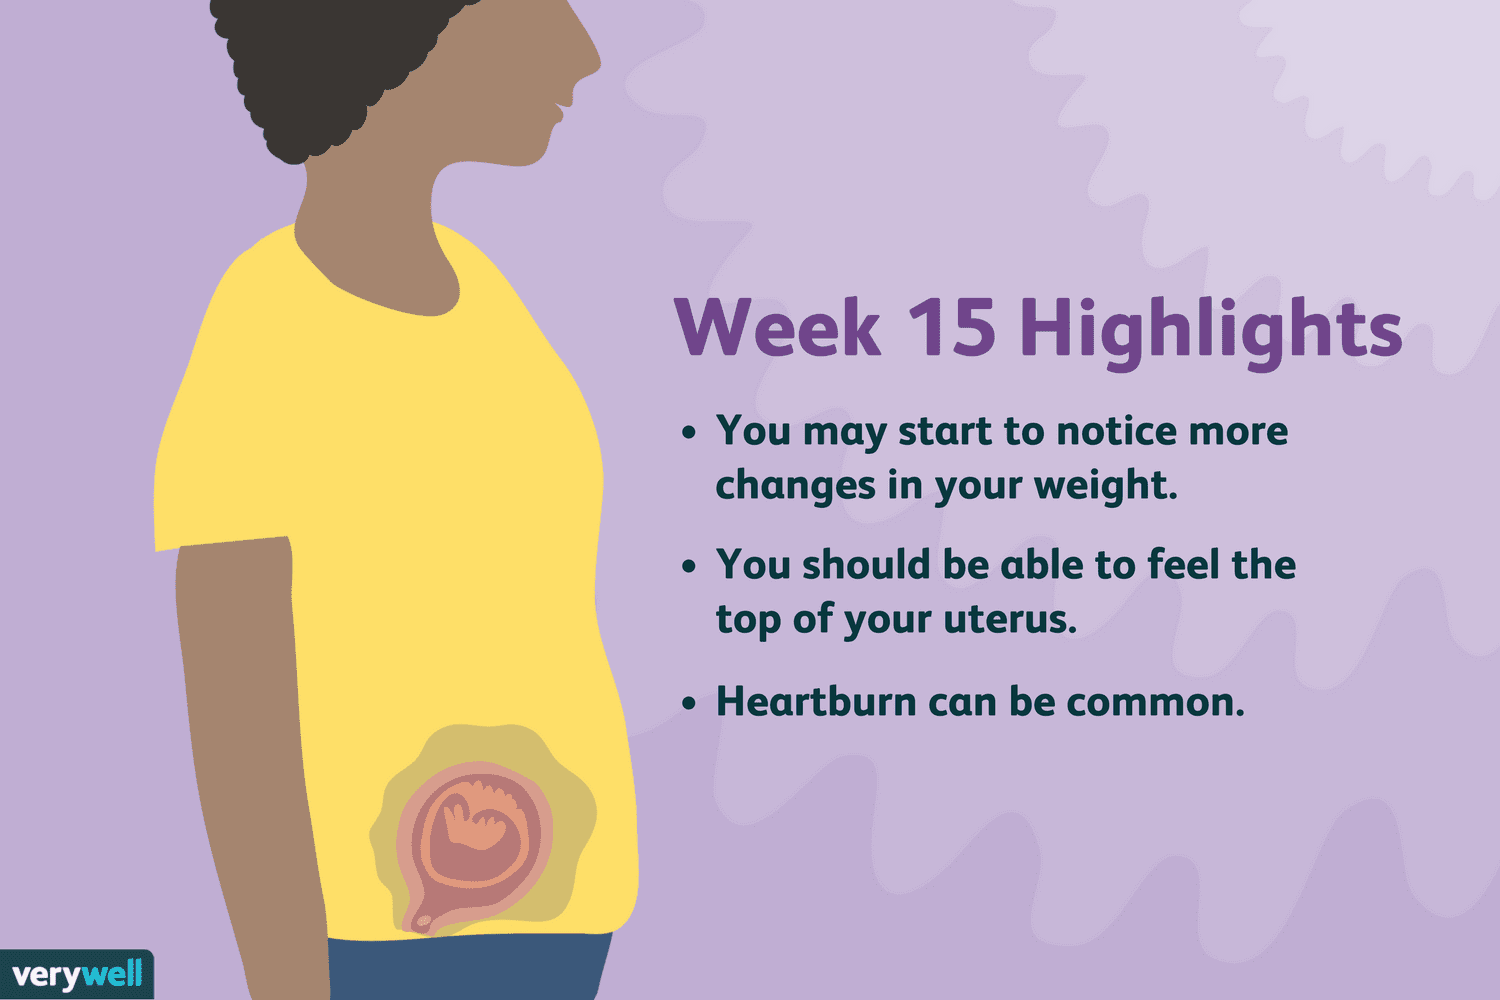 15 Weeks Pregnant: Symptoms, Baby Development, and More